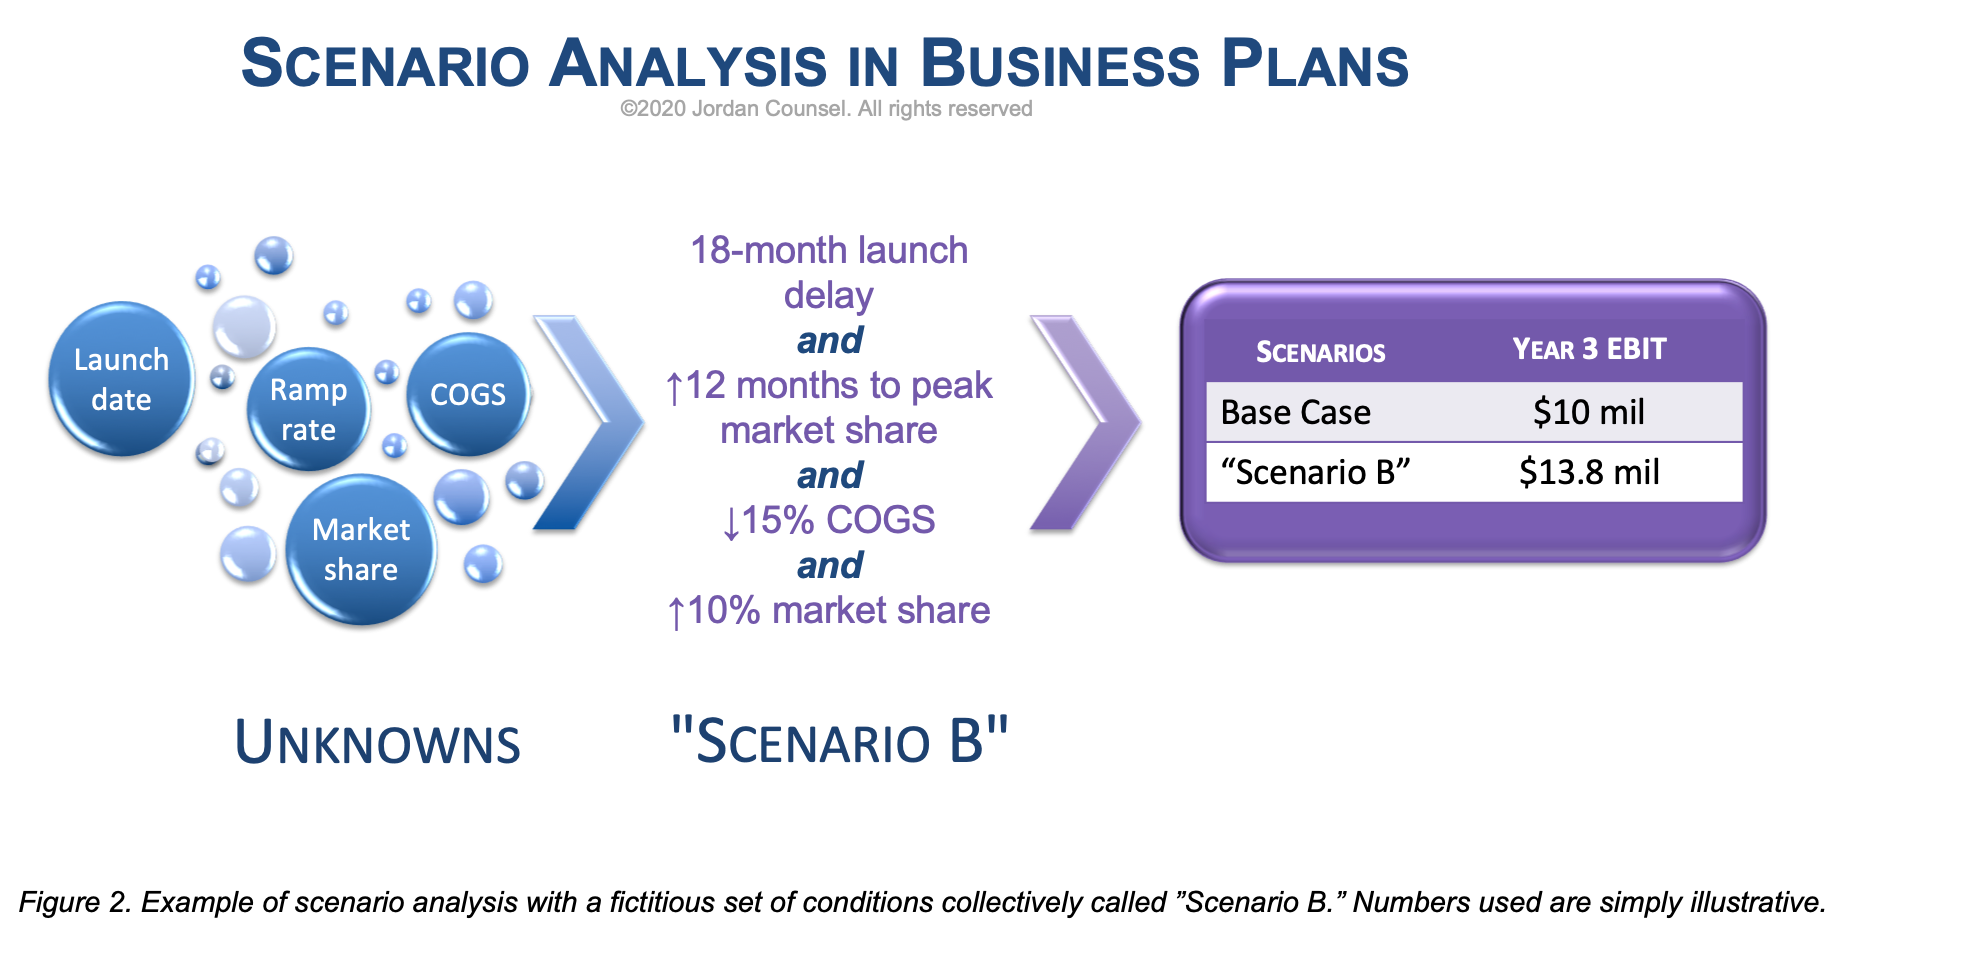 Example of how to perform scenario analysis in business plans